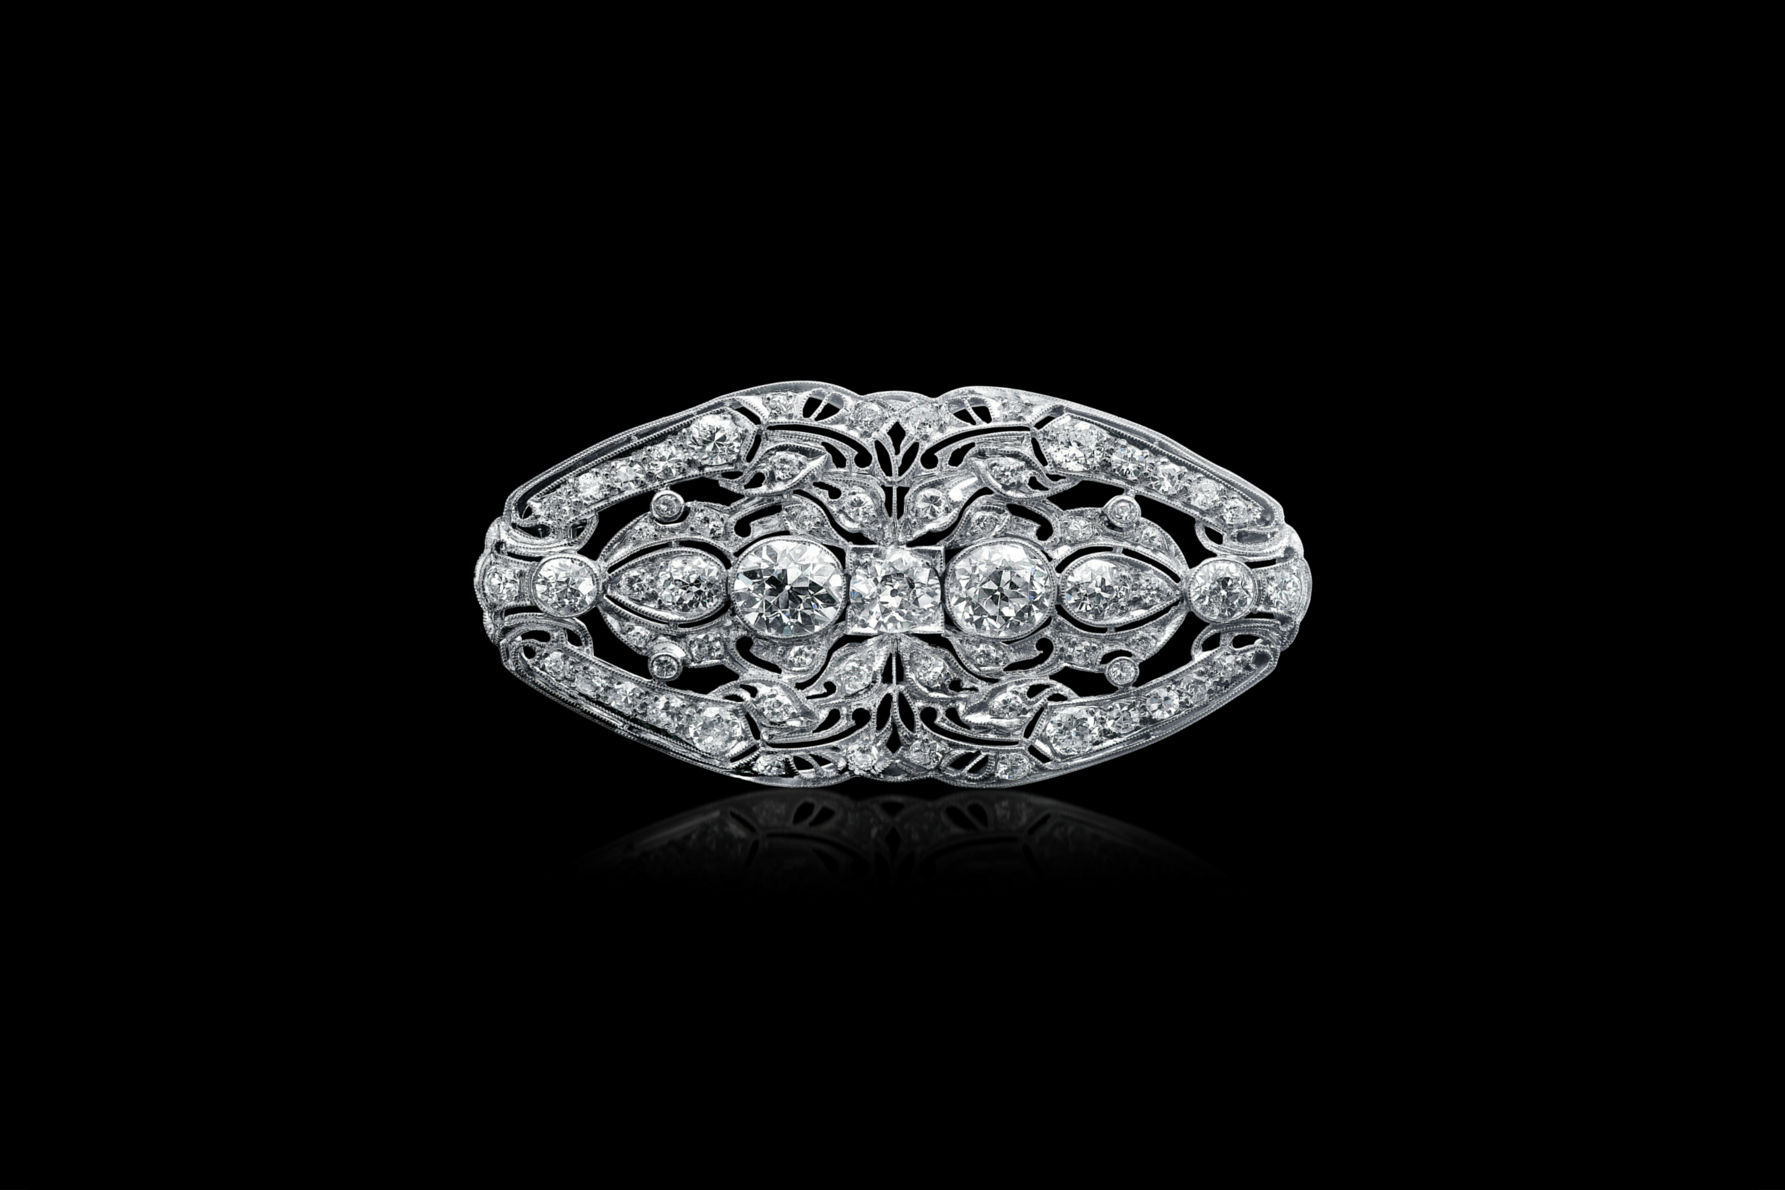 platinum art deco diamond brooch uhmzymw